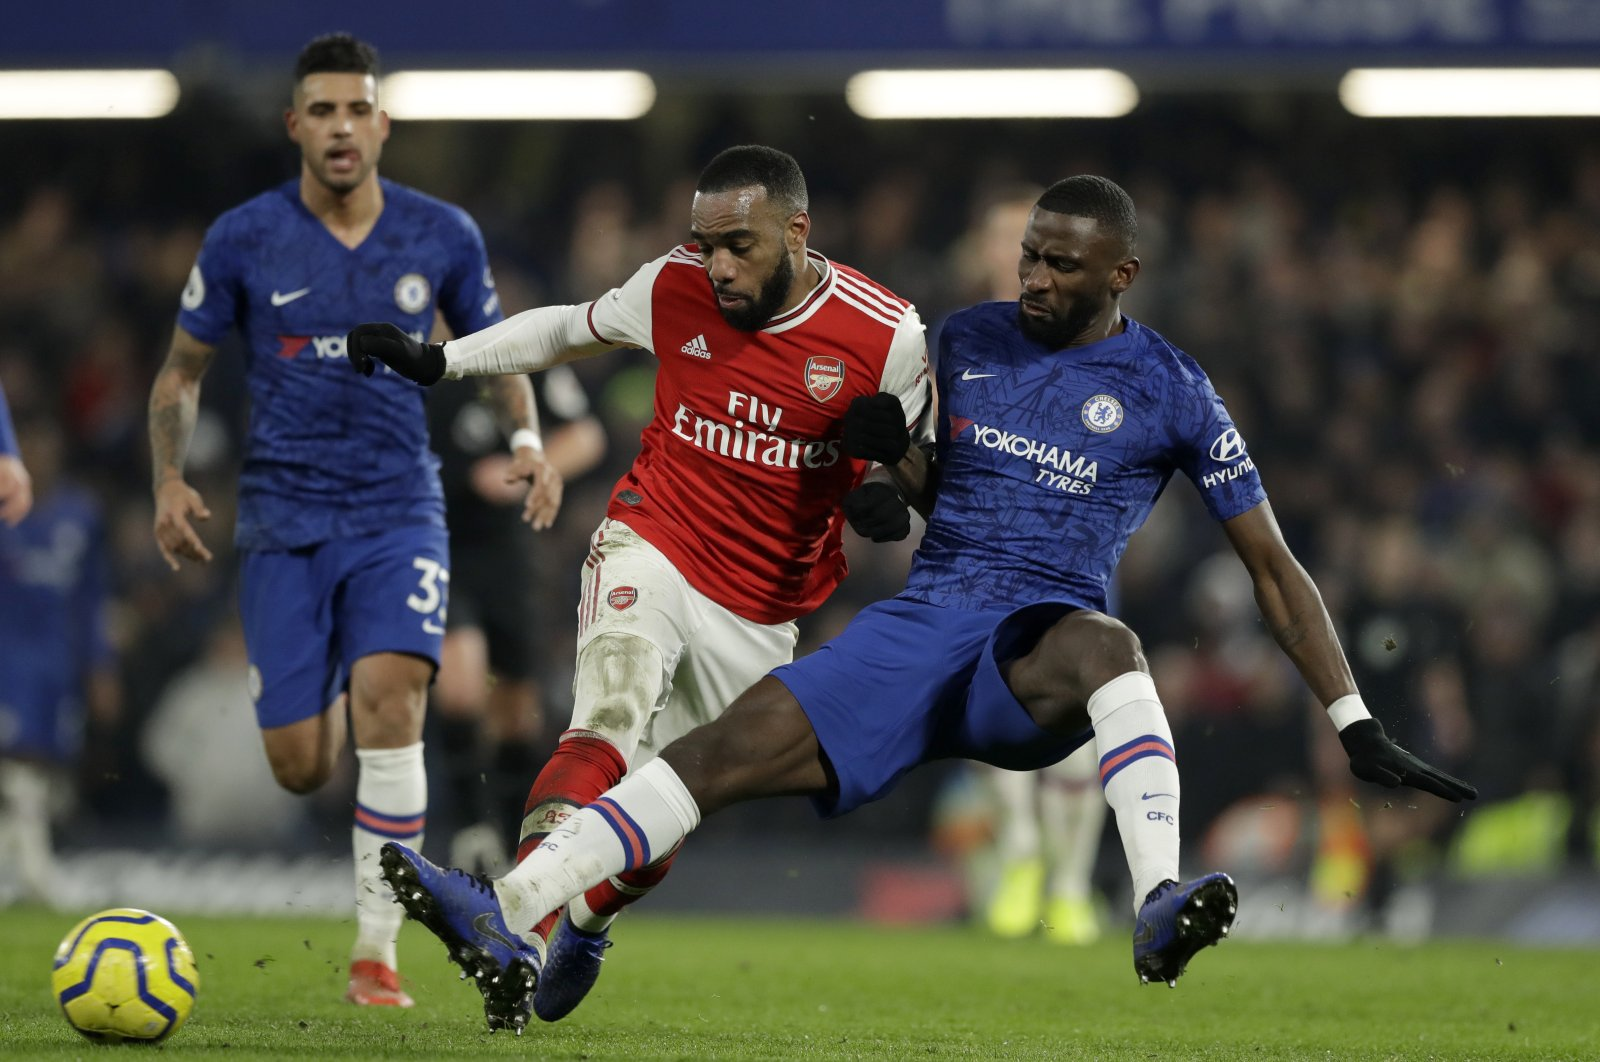 Arsenal's Alexandre Lacazette (C) duels for the ball with Chelsea's Antonio Rudiger during a Premier League match at Stamford Bridge Stadium in London, Britain, Jan. 21, 2020. (AP Photo)